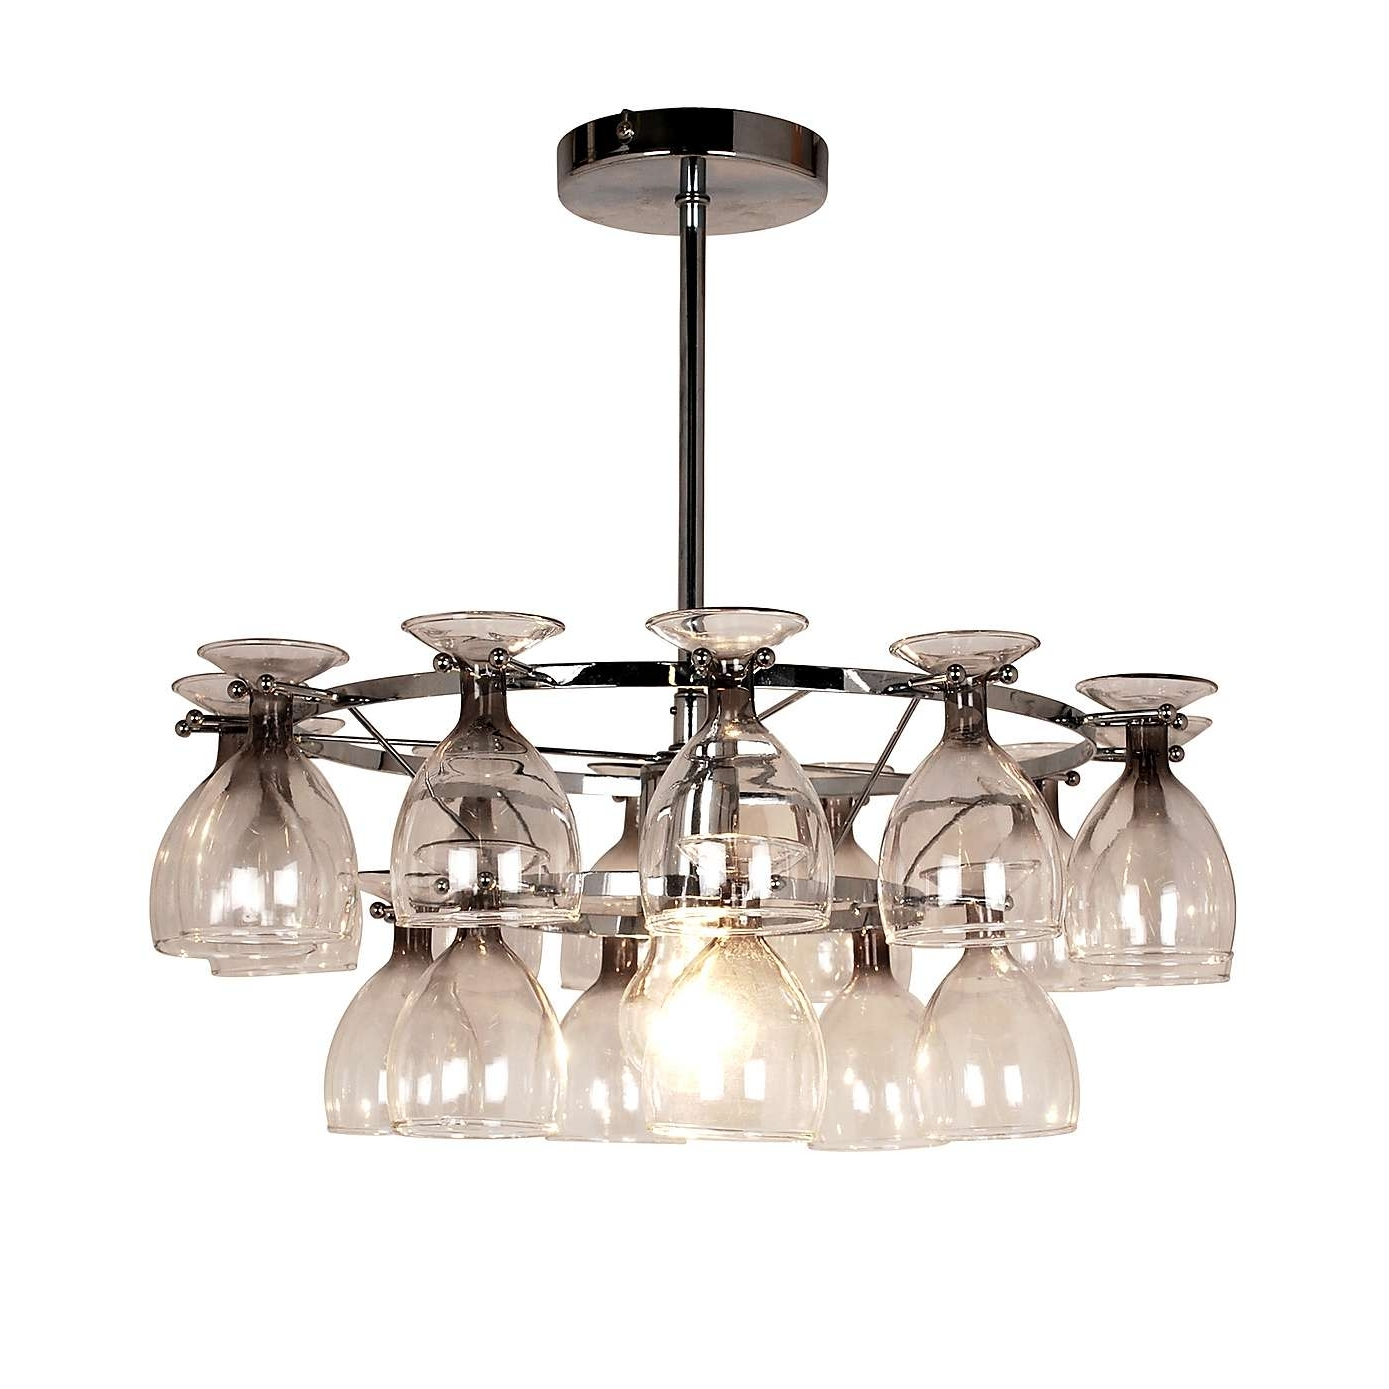 Preferred Light Fitting Chandeliers Intended For 5 Beautiful Wine Glass Light Fittings (View 17 of 20)